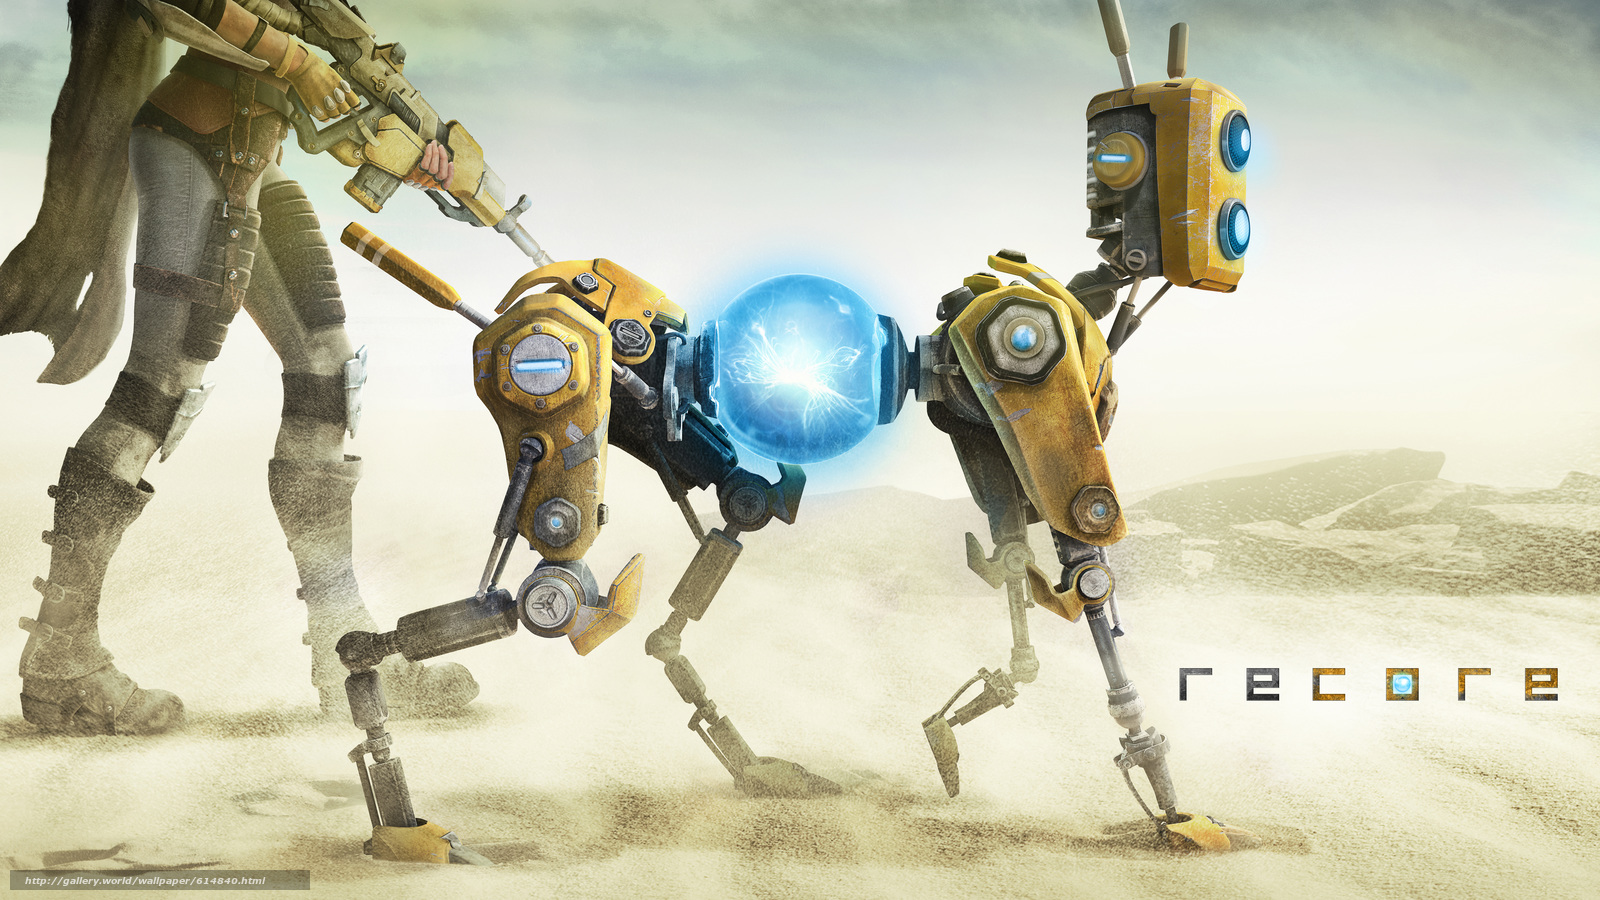 download wallpaper recore, robot, girl, sand free desktop wallpaper